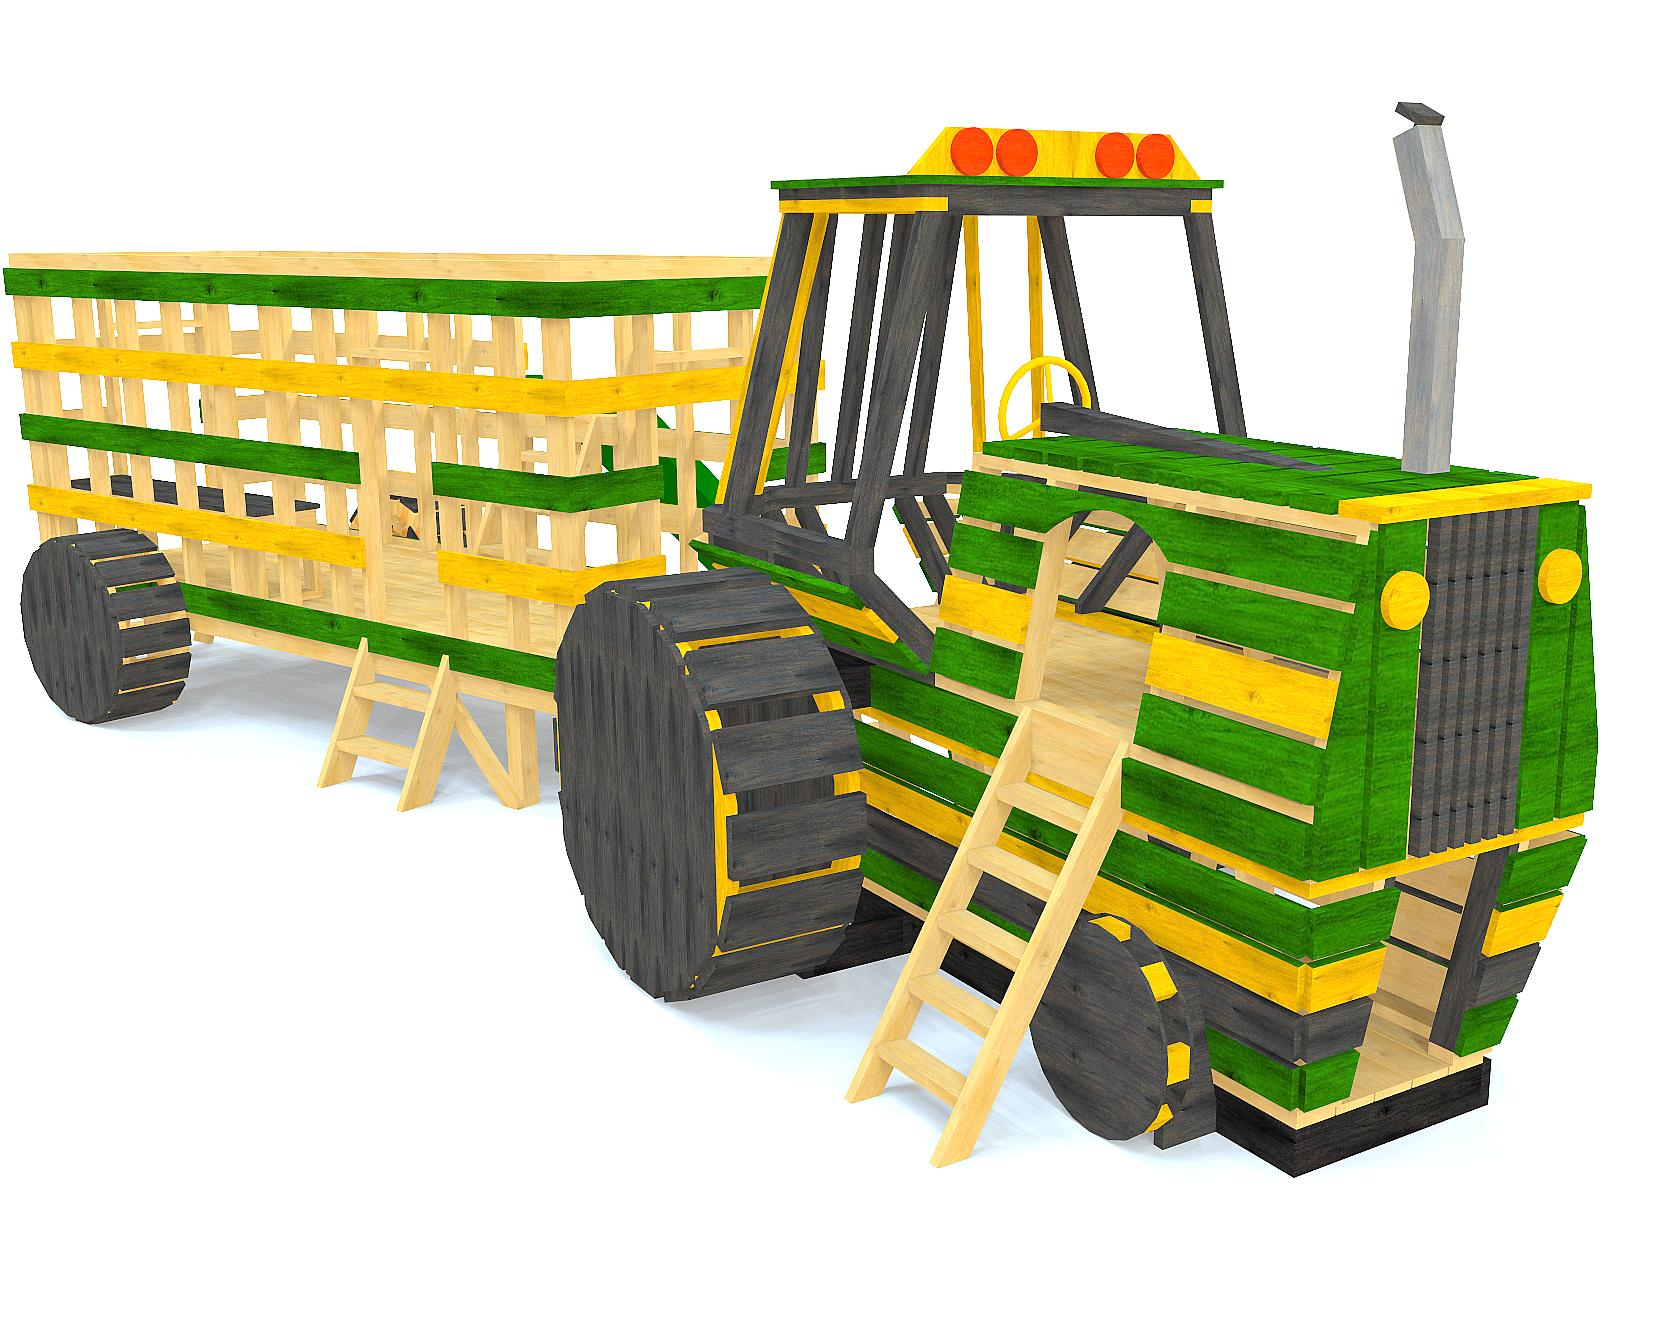 John Deere Tractor Playhouse Plans : Farm tractor play set plan life size wood for kids